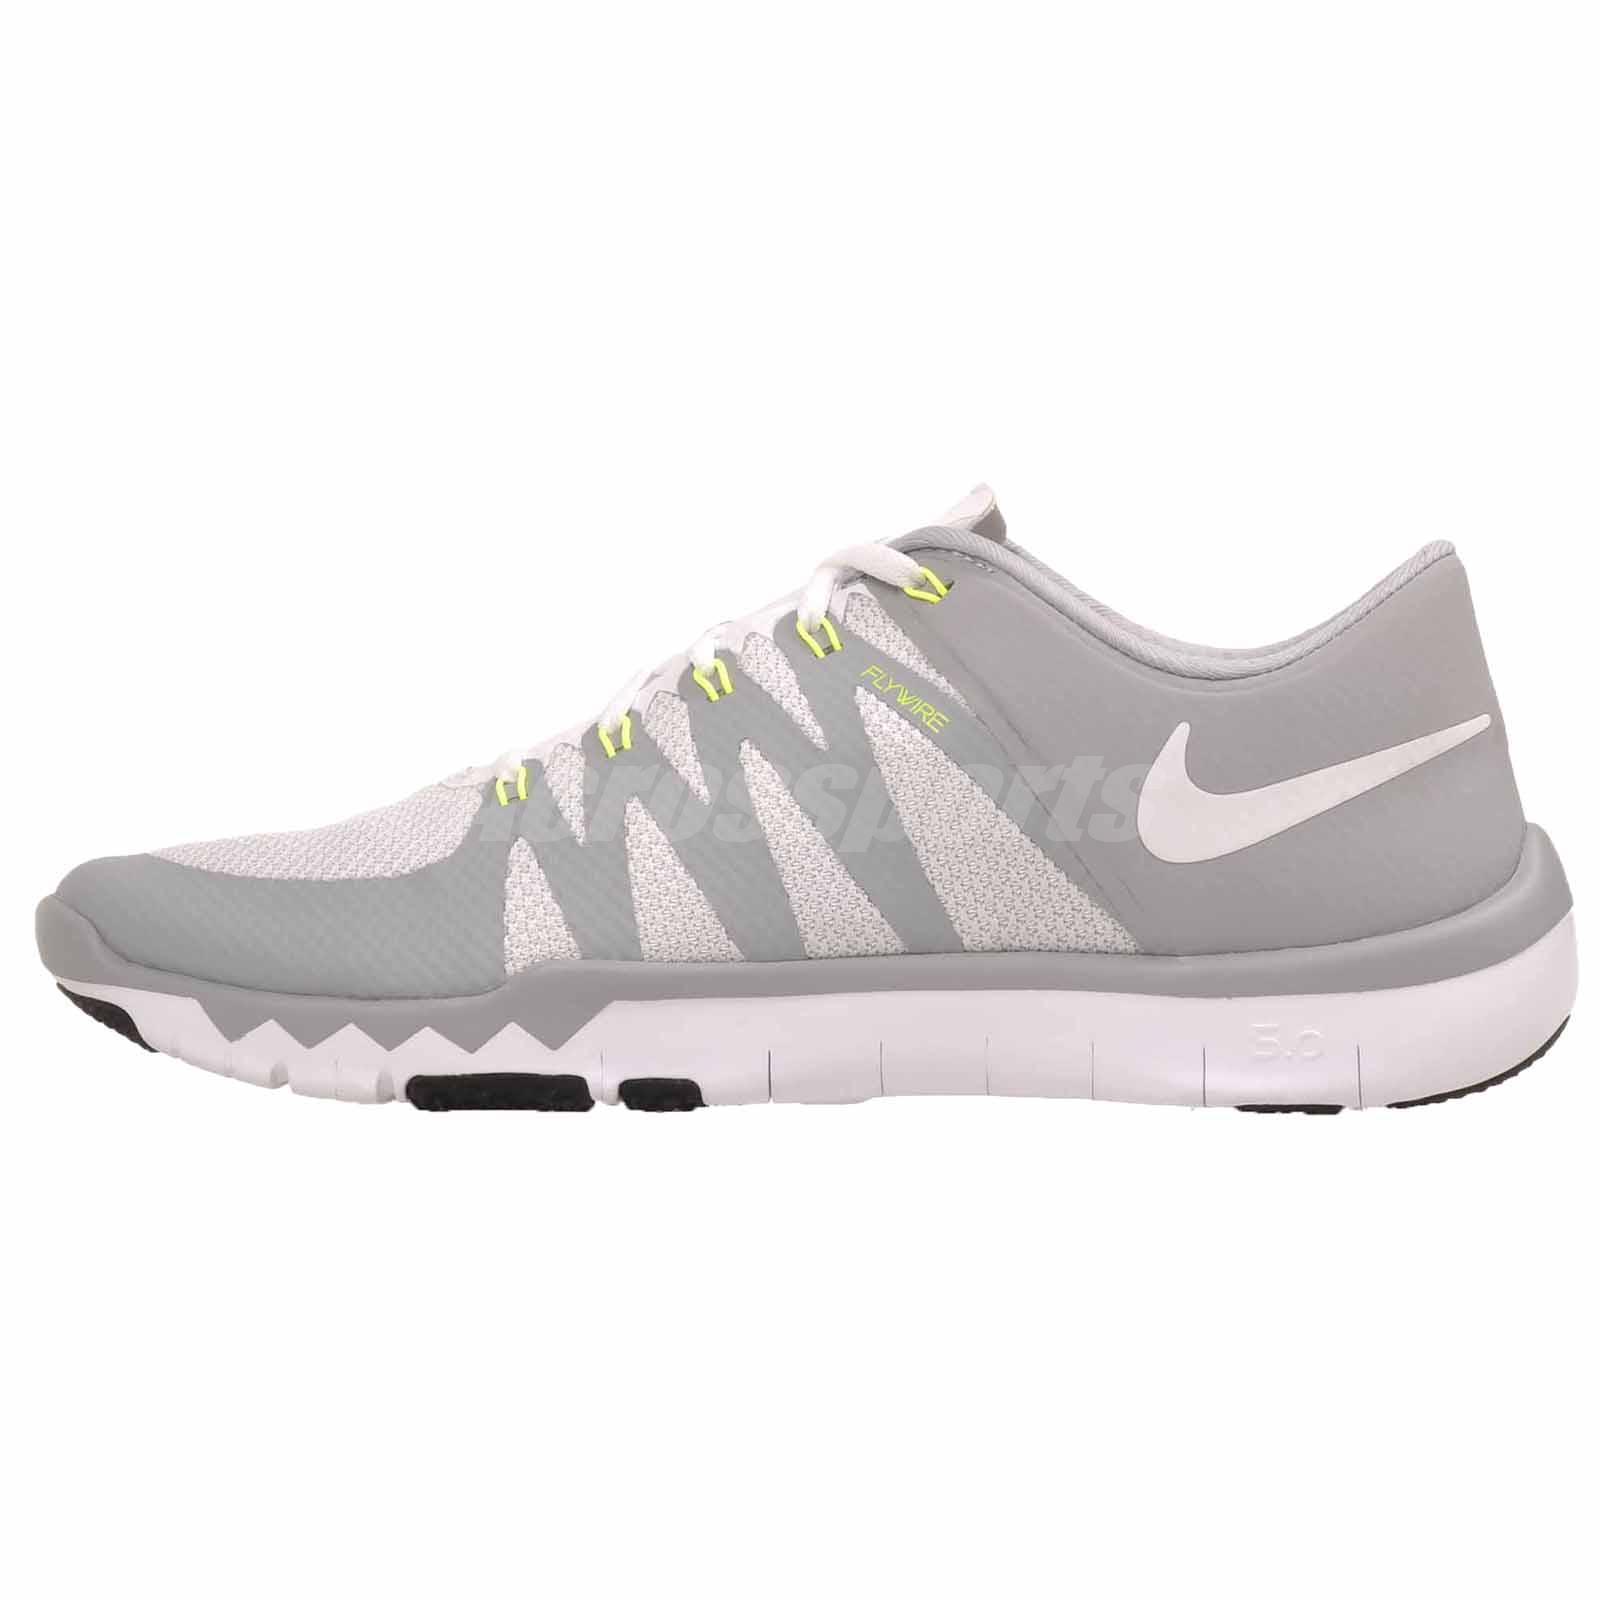 Nike Free Trainer 5.0 V6 Cross Training Mens Shoes White Grey 719922-100